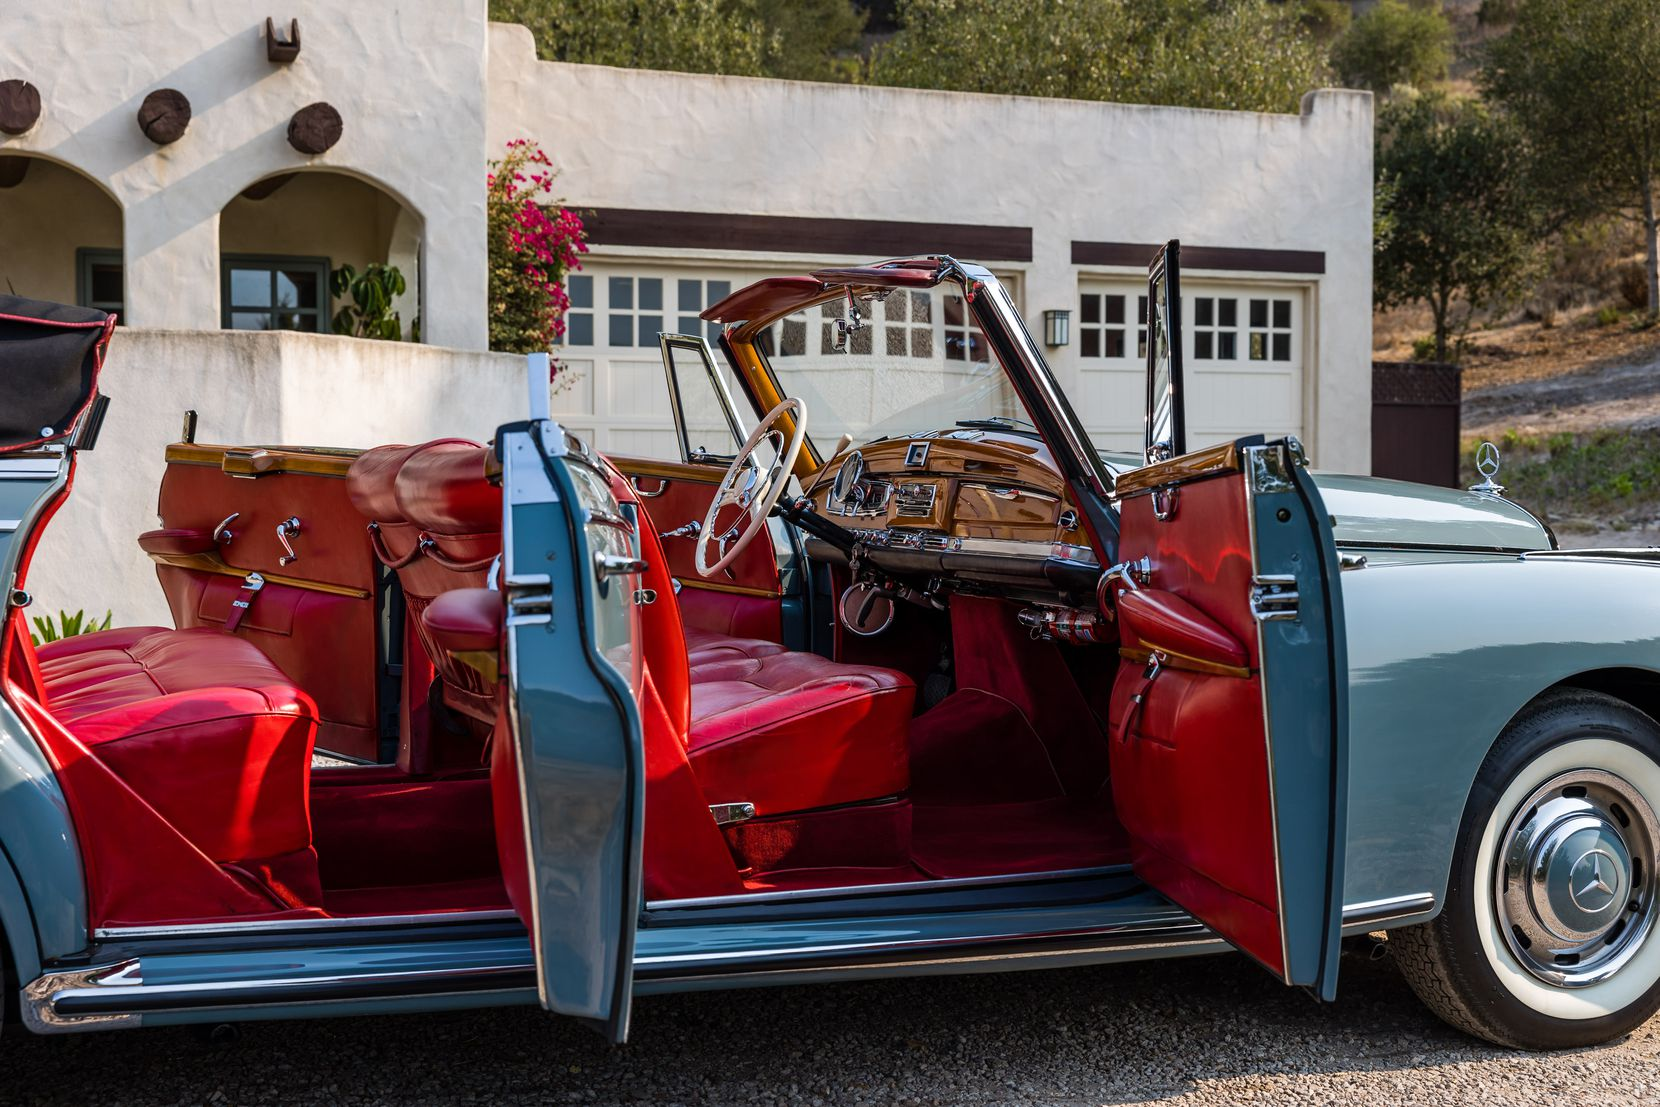 A rare 1959 Mercedes-Benz 300 D Cabriolet custom-ordered and owned by American jazz great Ella Fitzgerald is now for sale by California dealership Scott Grundfor Co.